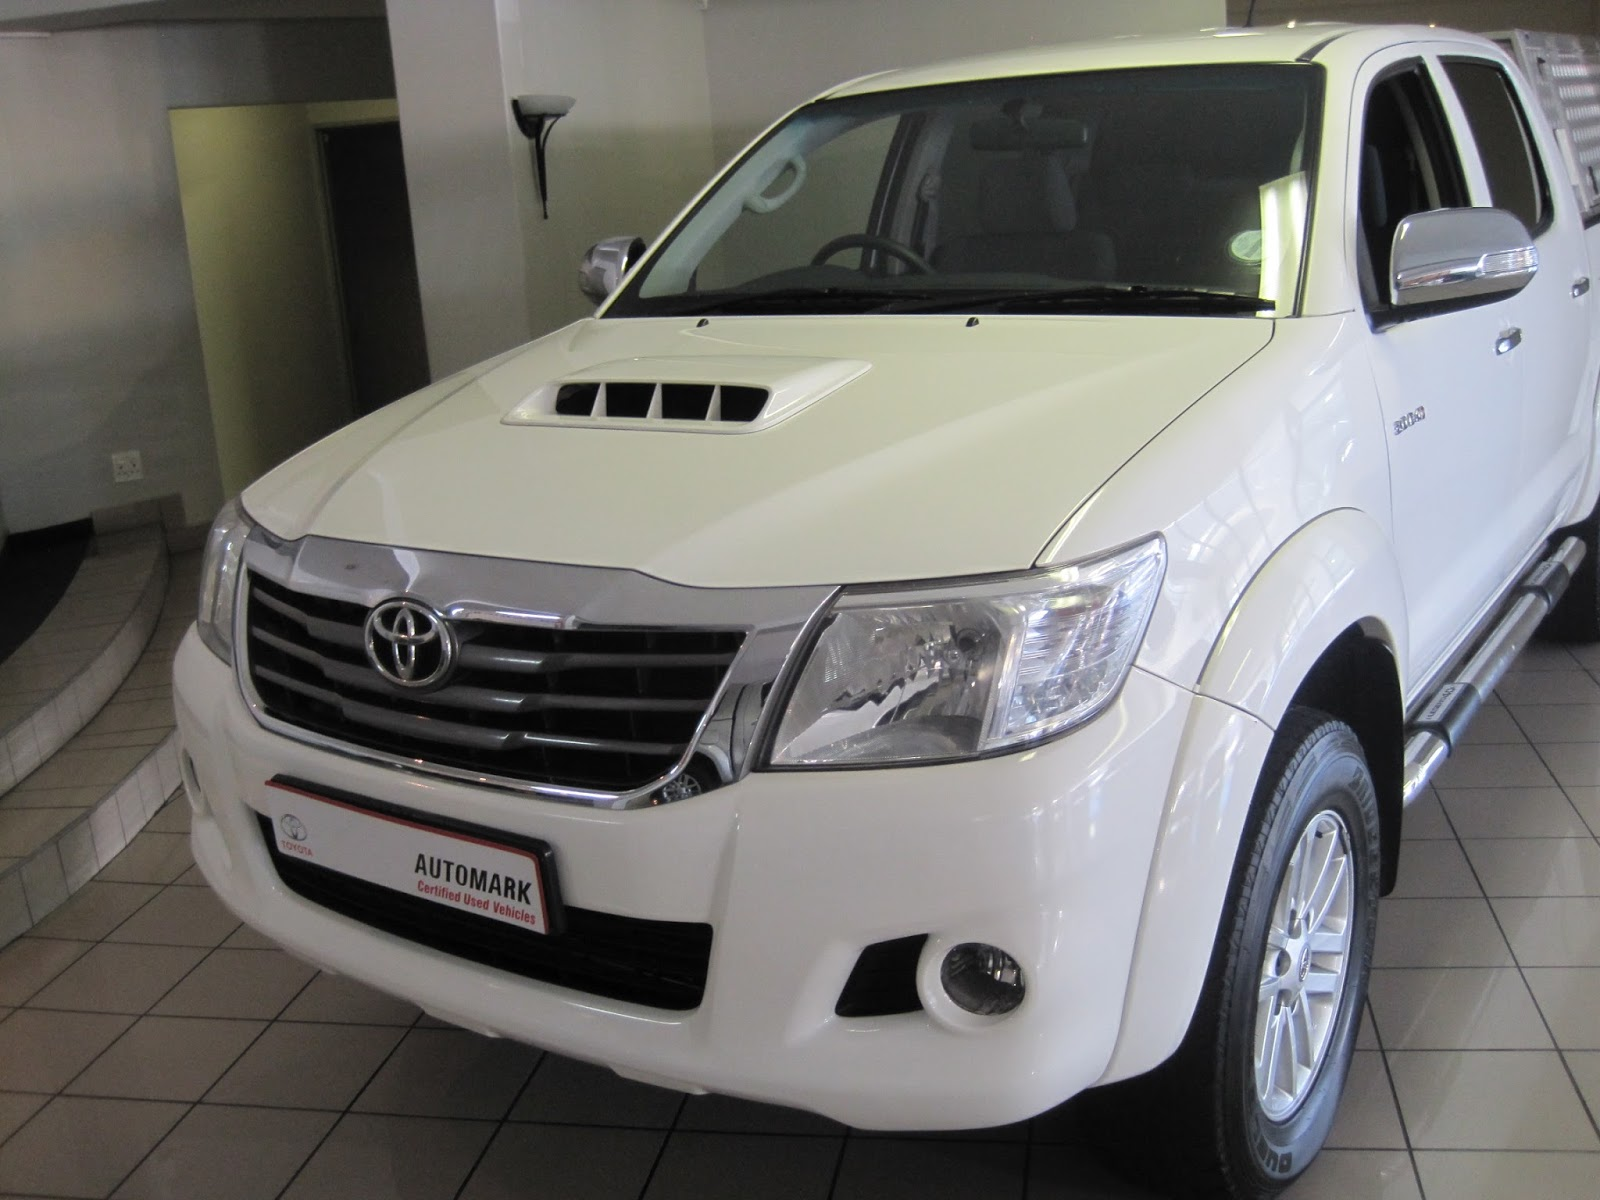 Cars Sale Gumtree Lovely Gumtree Second Hand Vehicles for Sale Cape town Olx Car Dealer